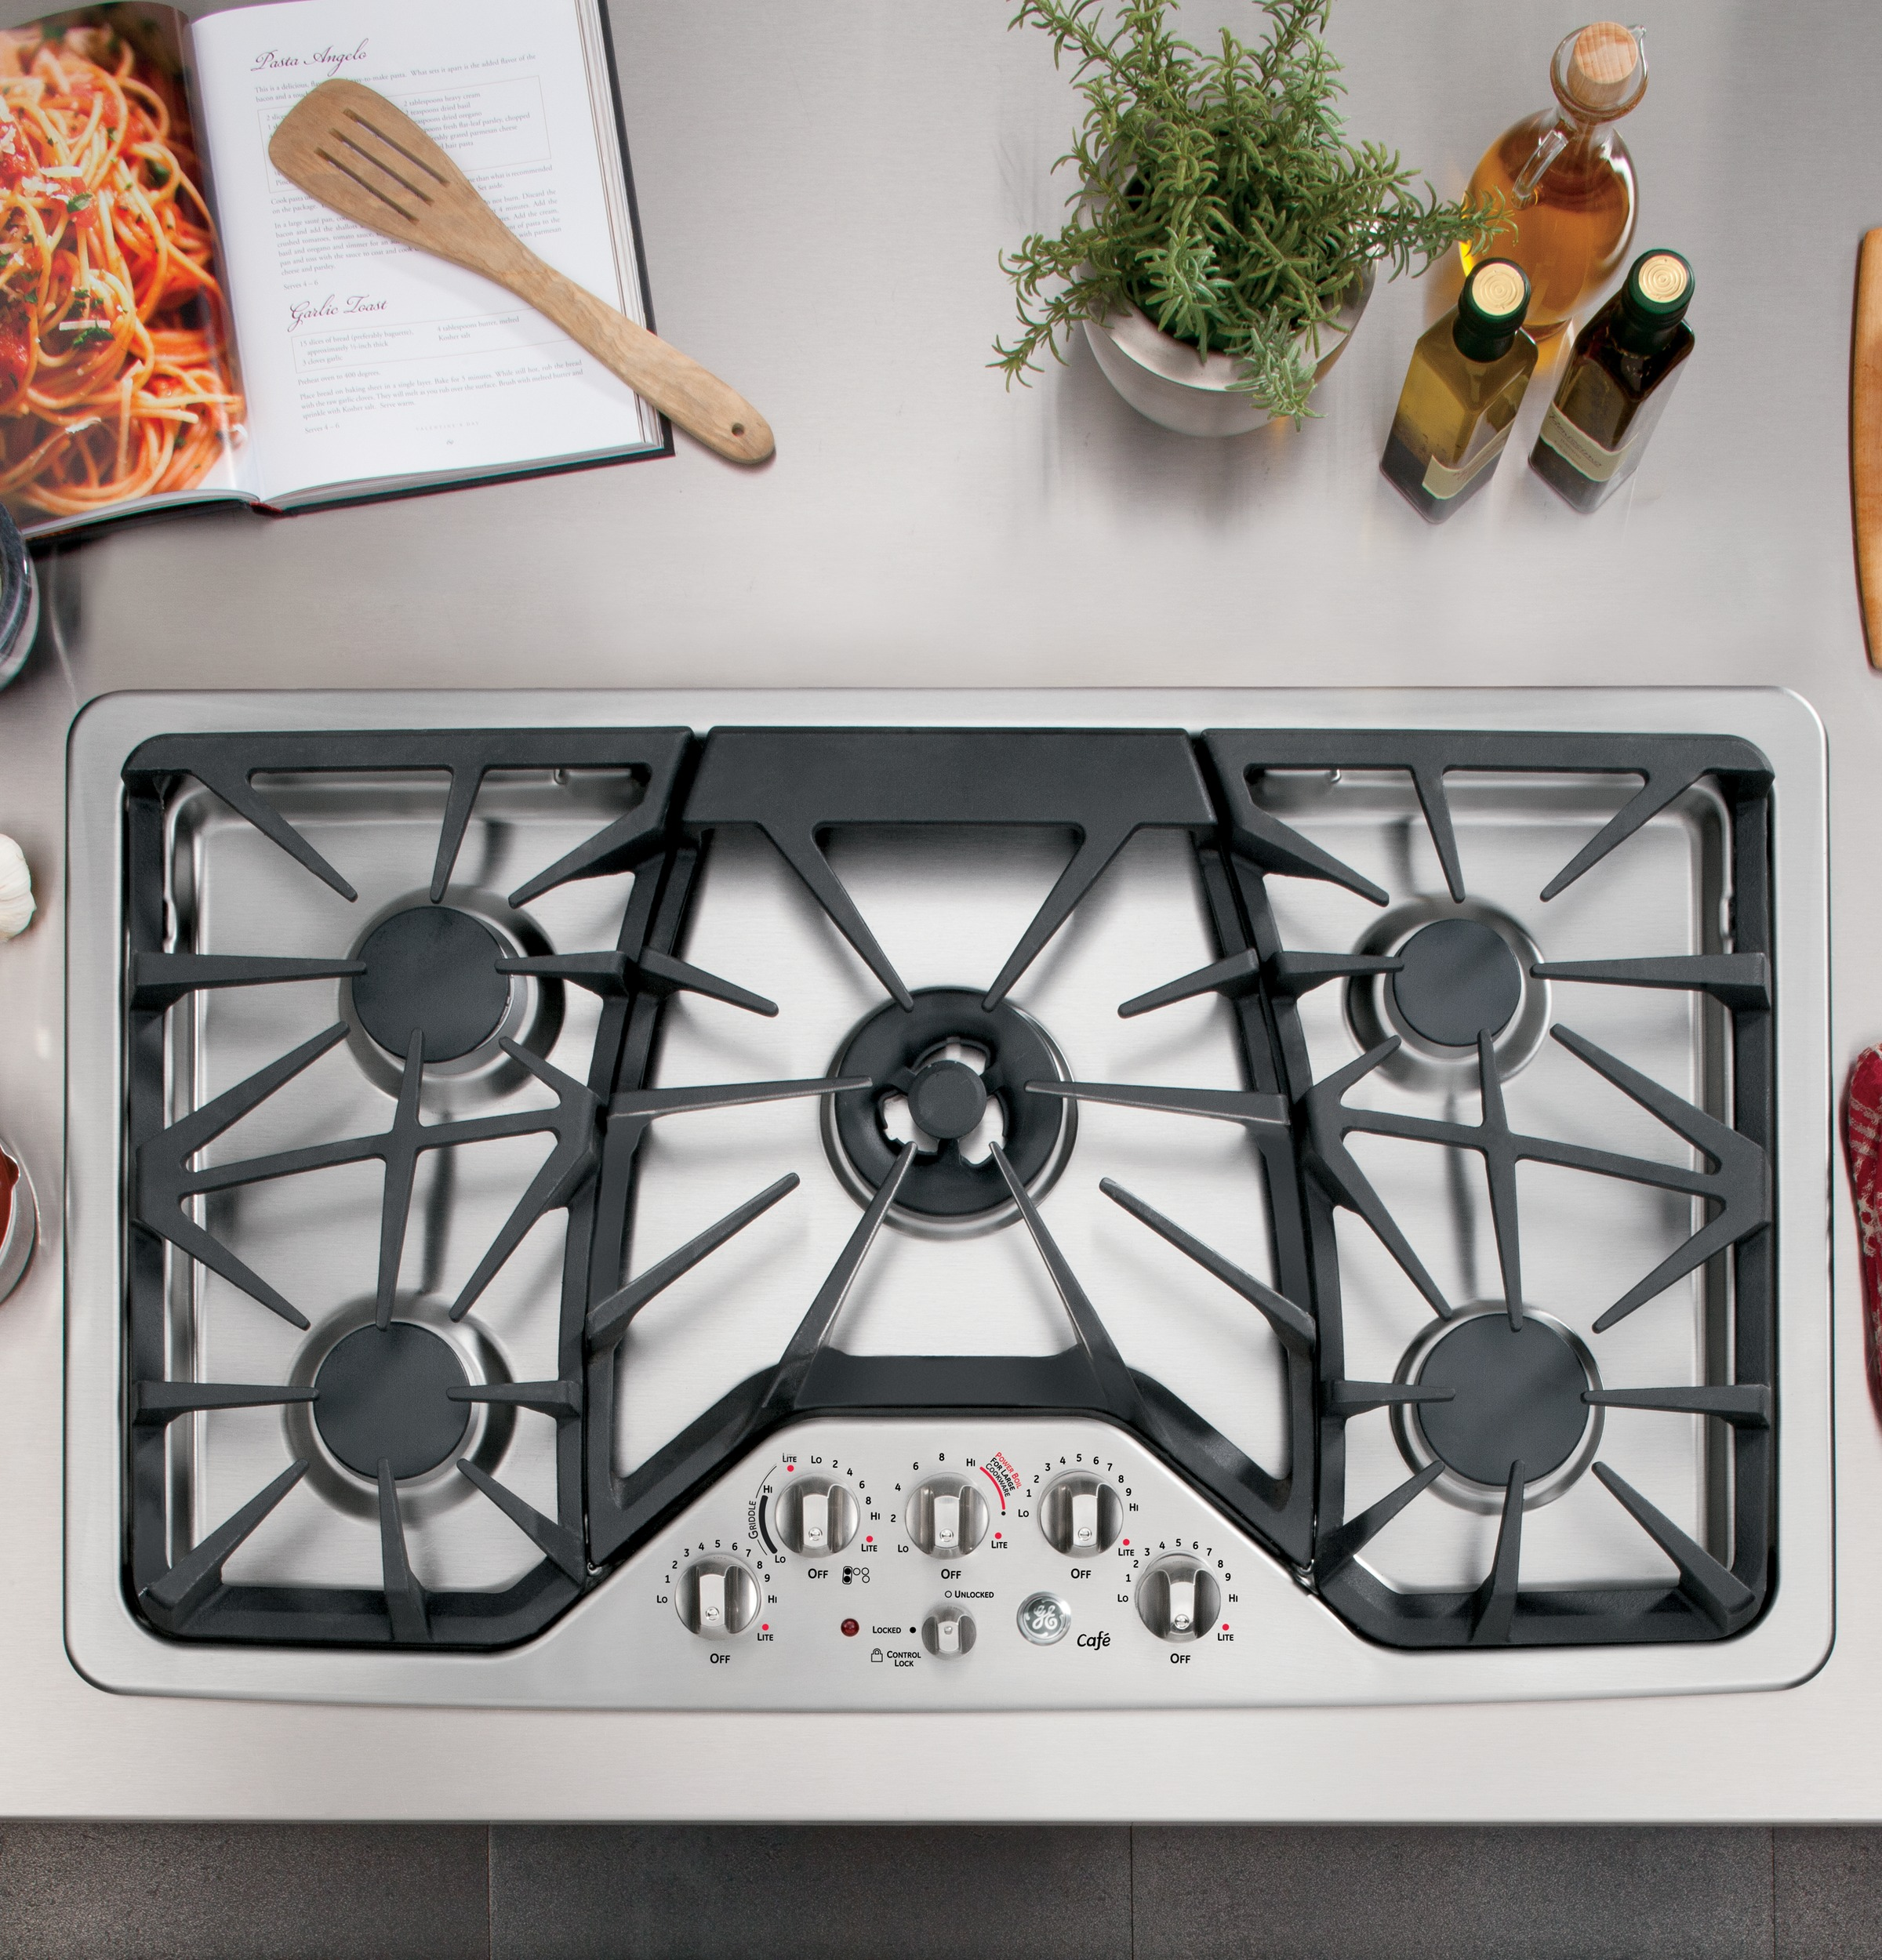 GE CafTM Series 36 Built In Gas Cooktop